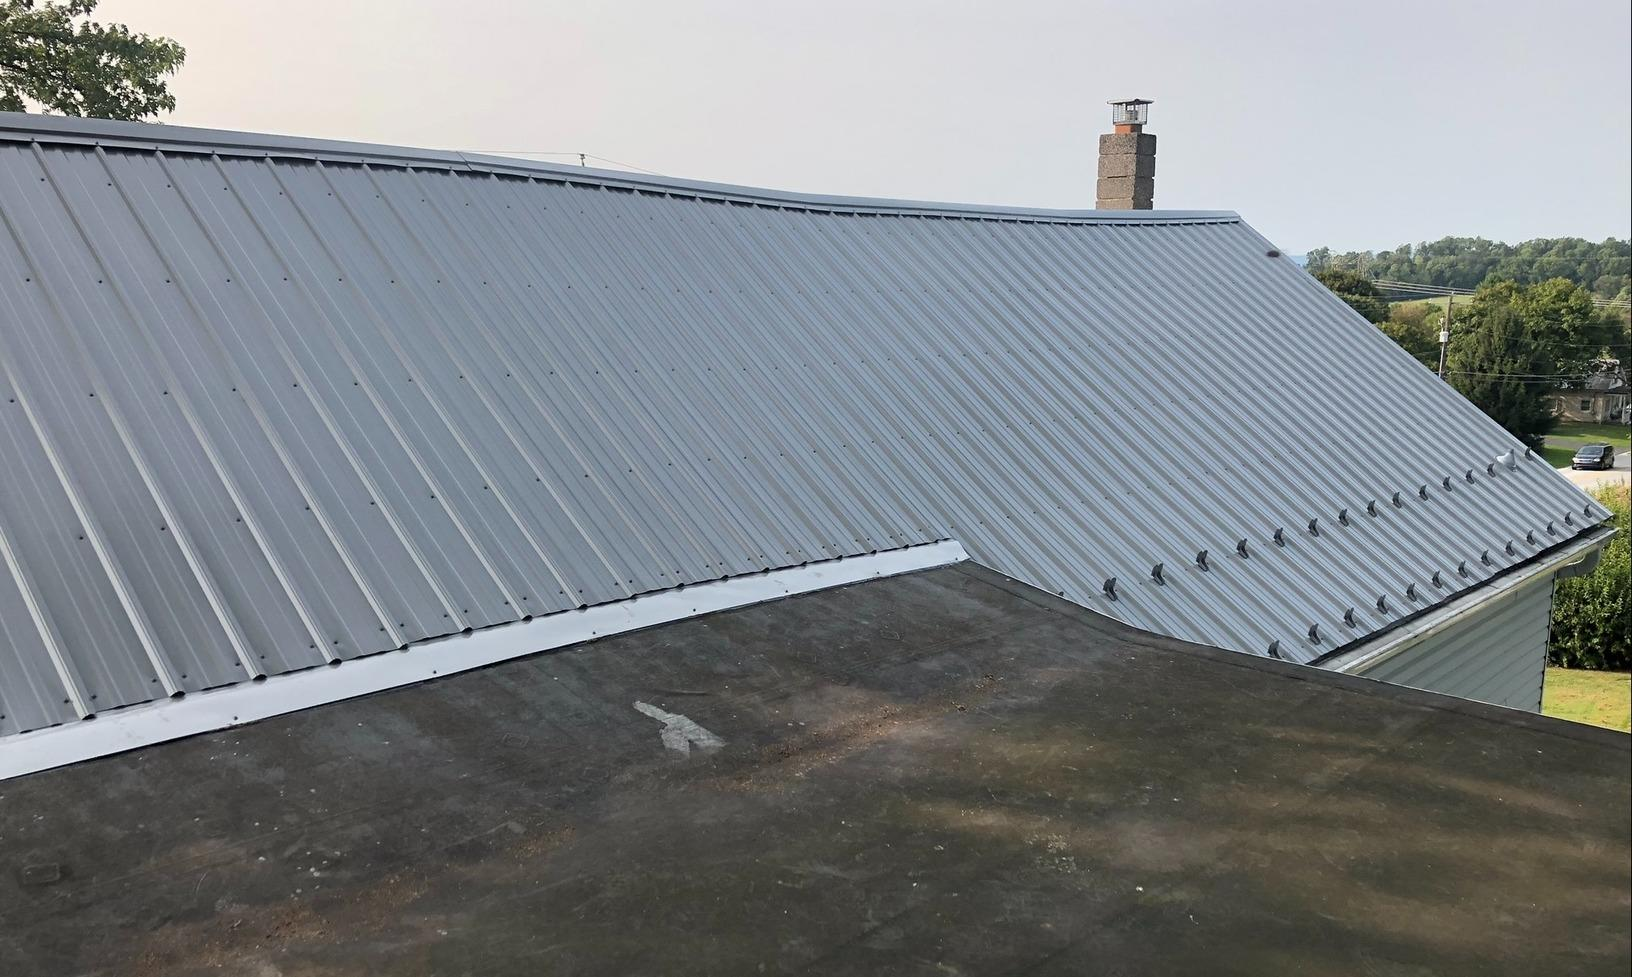 Corrugated Metal Roofing Panels Installed in Dillsburg, Pa - After Photo